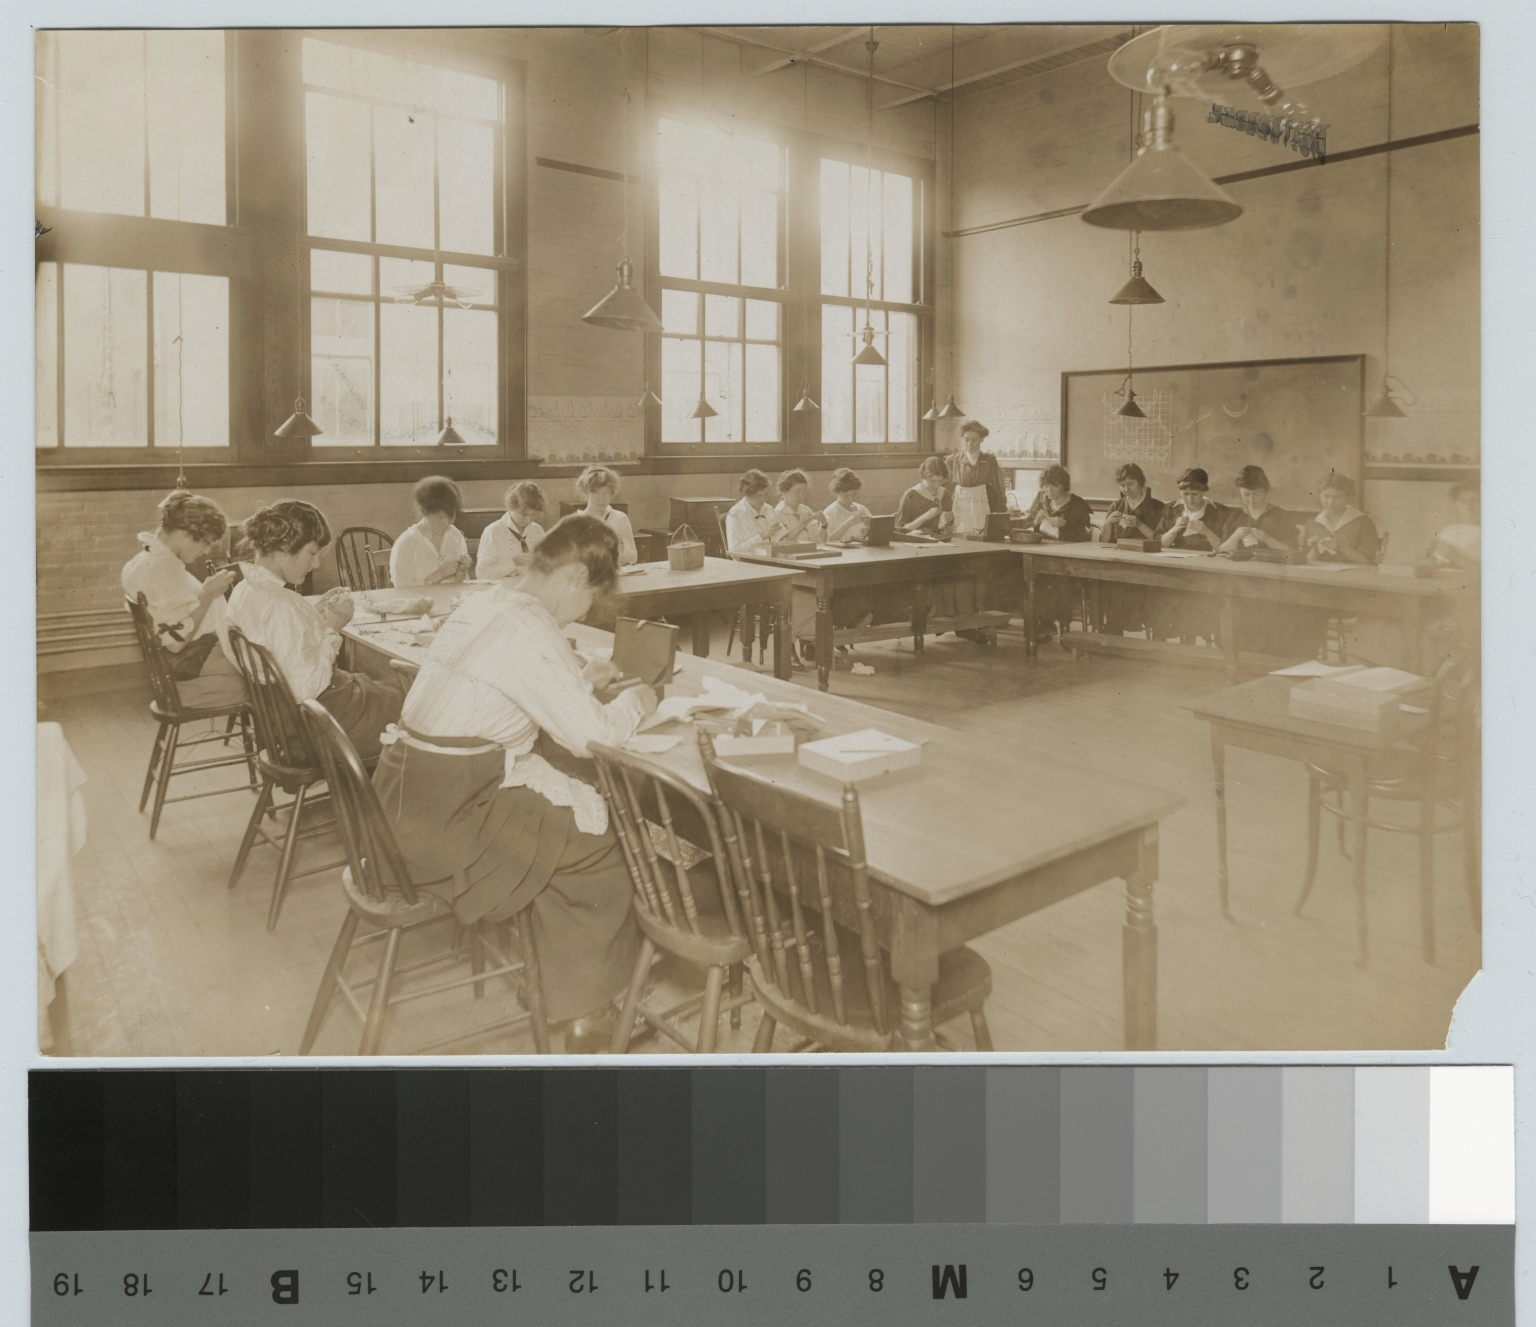 Women in sewing class, Rochester Athenaeum and Mechanics Institute [1900-1915]